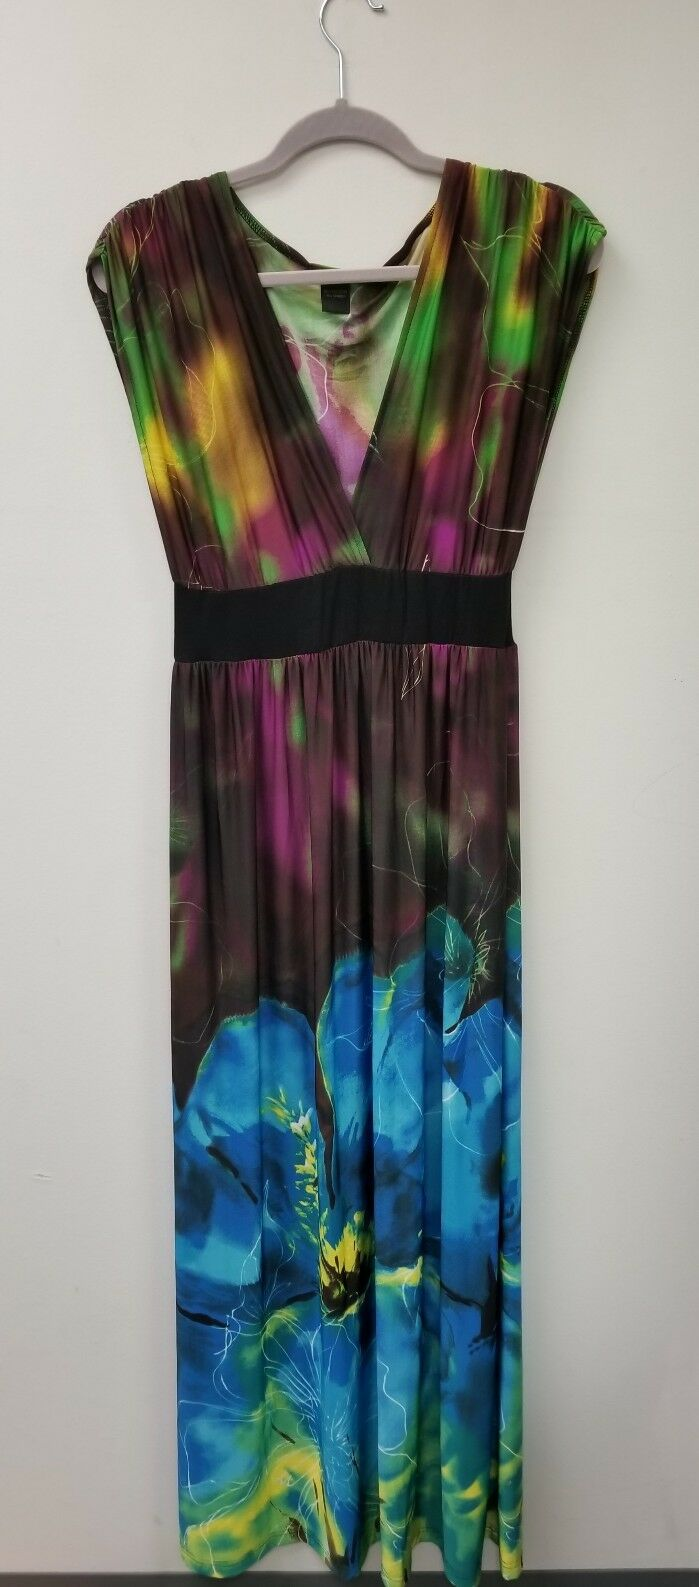 STUNNING EXOTIC FLORAL PRINT SLEEVELESS DRESS UP  DOWNMAXI WOMEN'S SIZE L LARGE